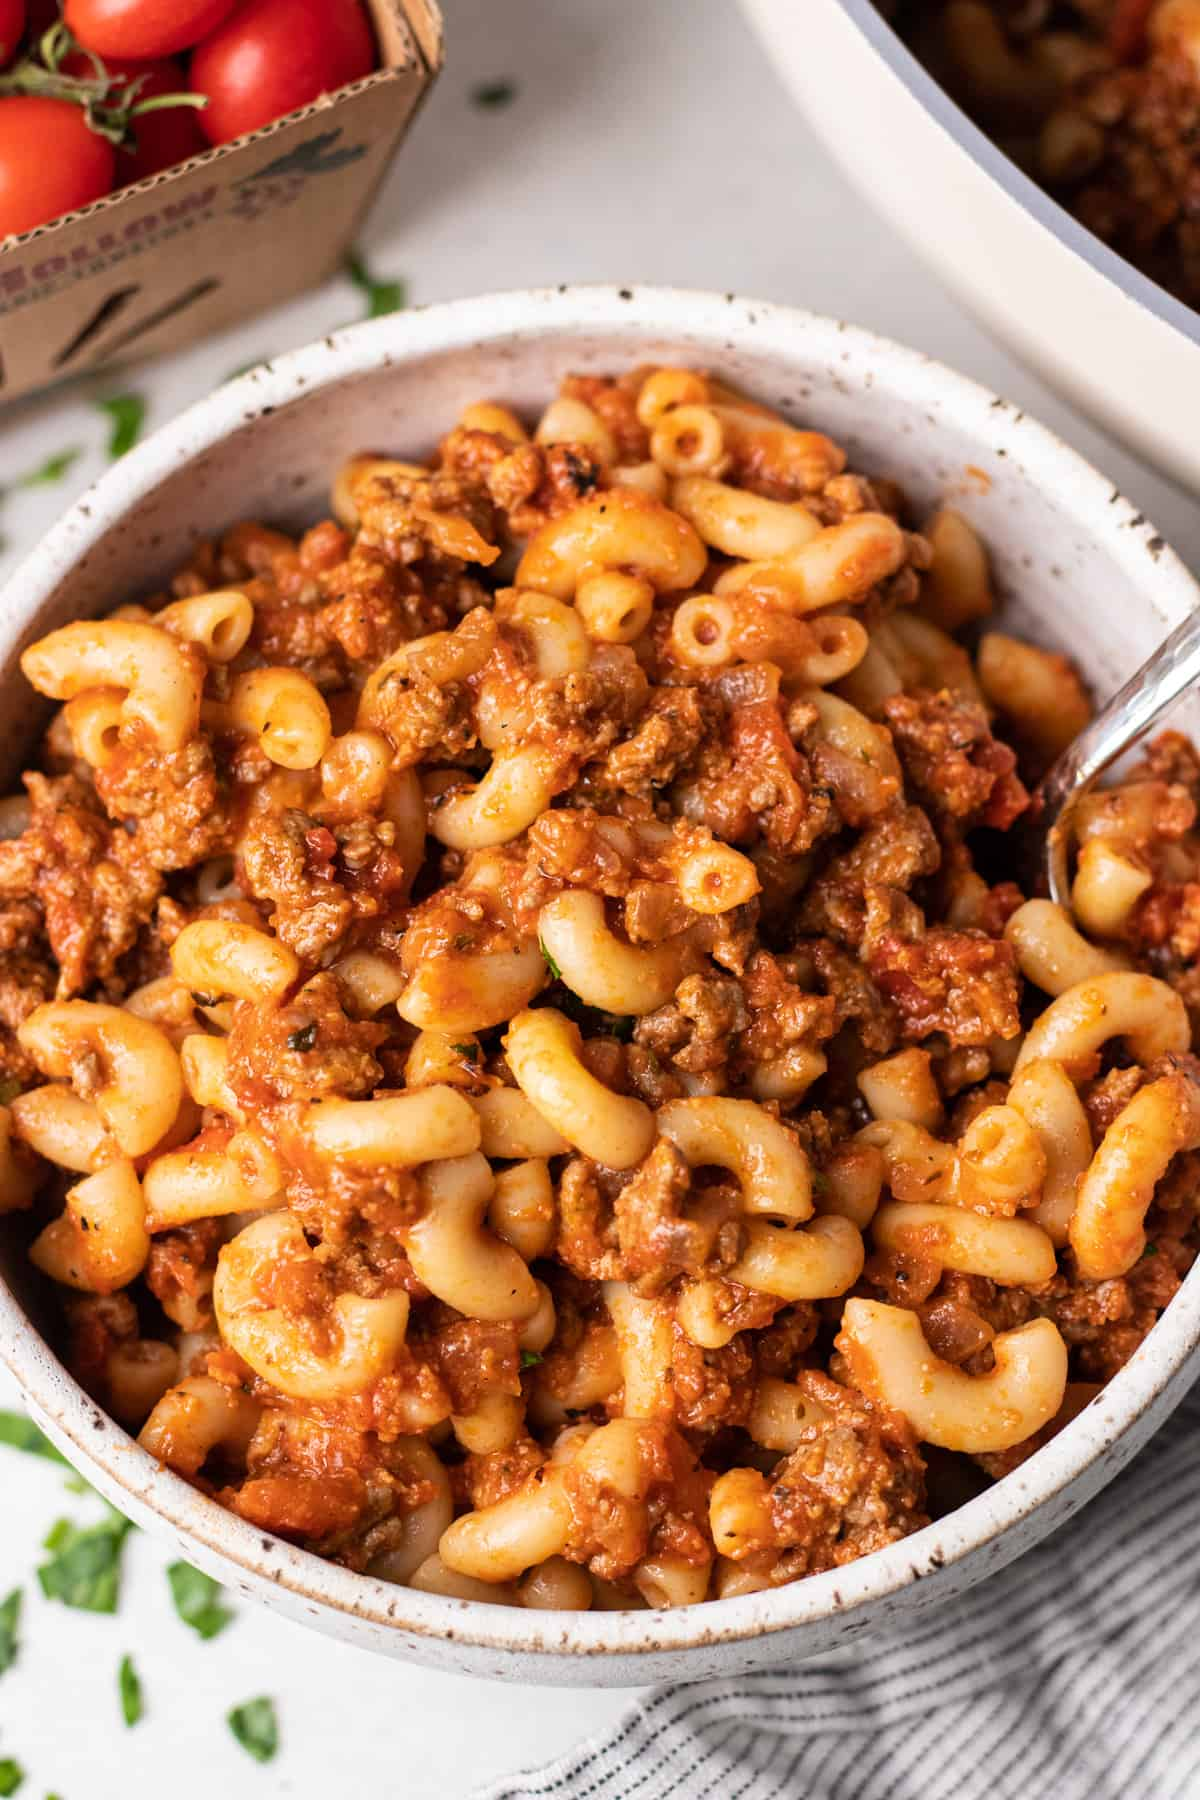 Old Fasioned American Goulash, made with round beef, tomato sauce, and elbow macaroni.